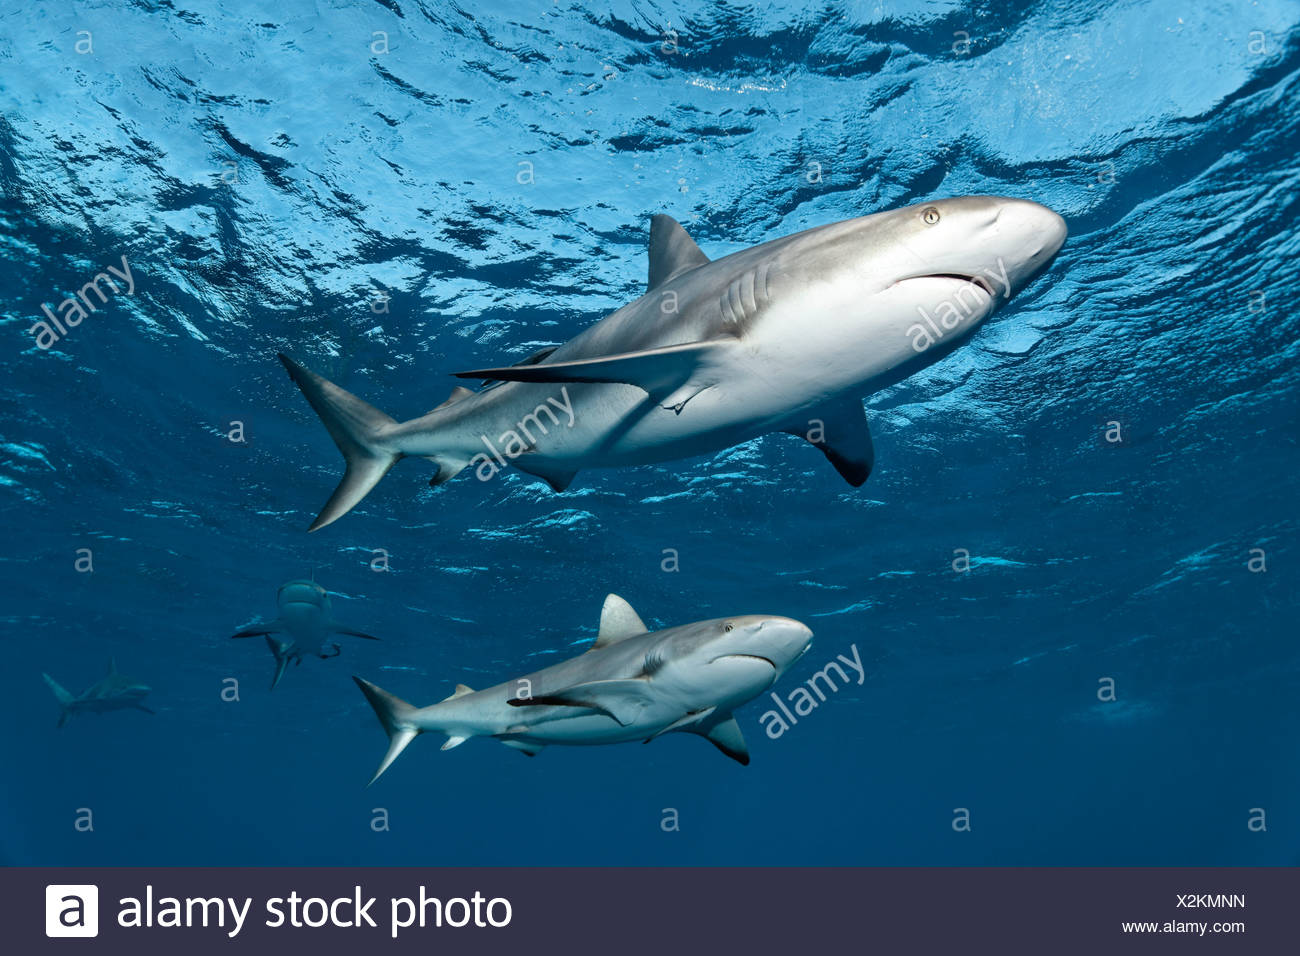 Caribbean reef sharks (Carcharhinus perezi), swimming in open water, Republic of Cuba, Caribbean, Central America - Stock Image